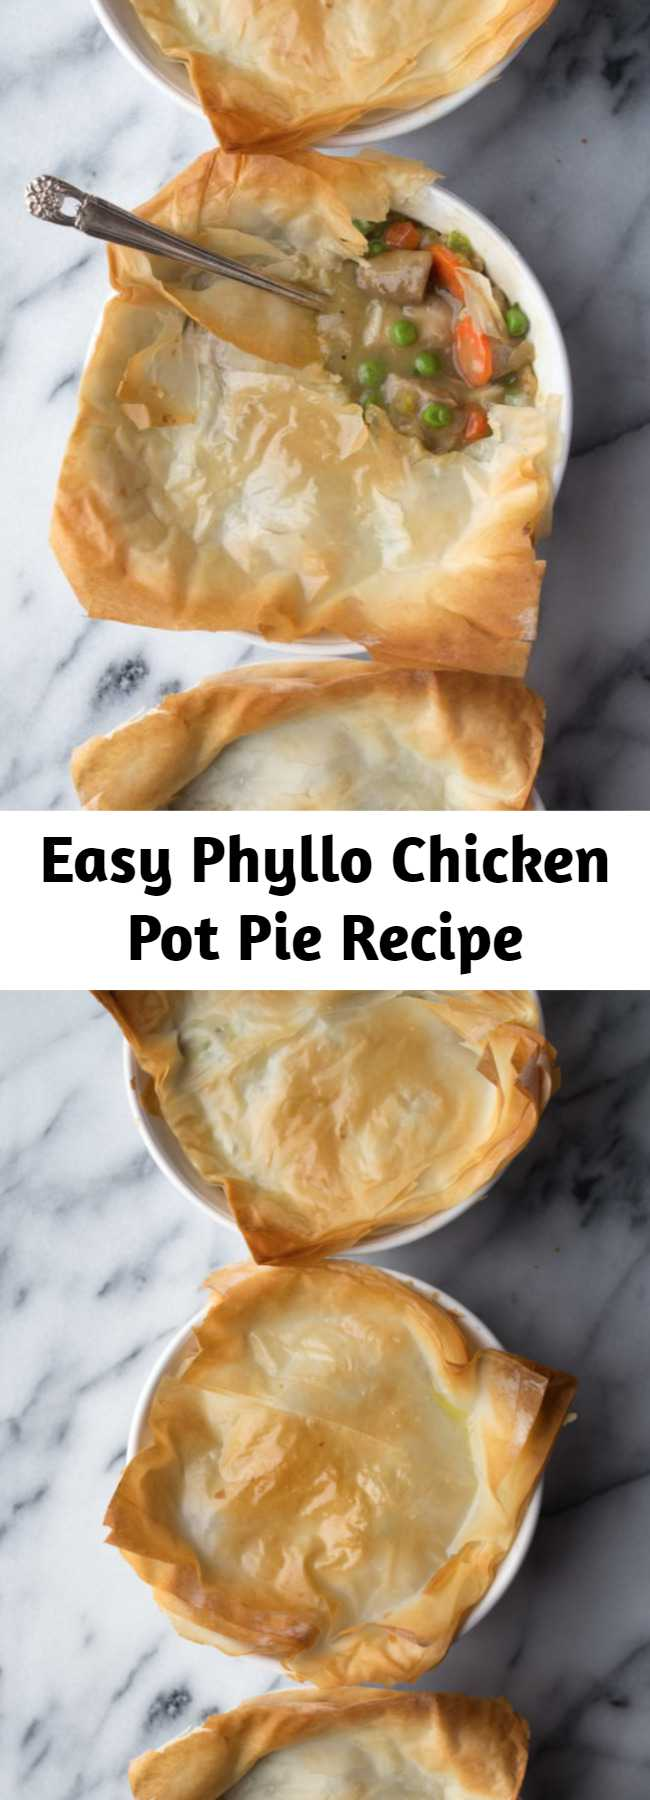 Easy Phyllo Chicken Pot Pie Recipe - Save a ton of calories and fat by using phyllo and this simple recipe for Phyllo Chicken Pot Pie! So easy and incredibly delicious!